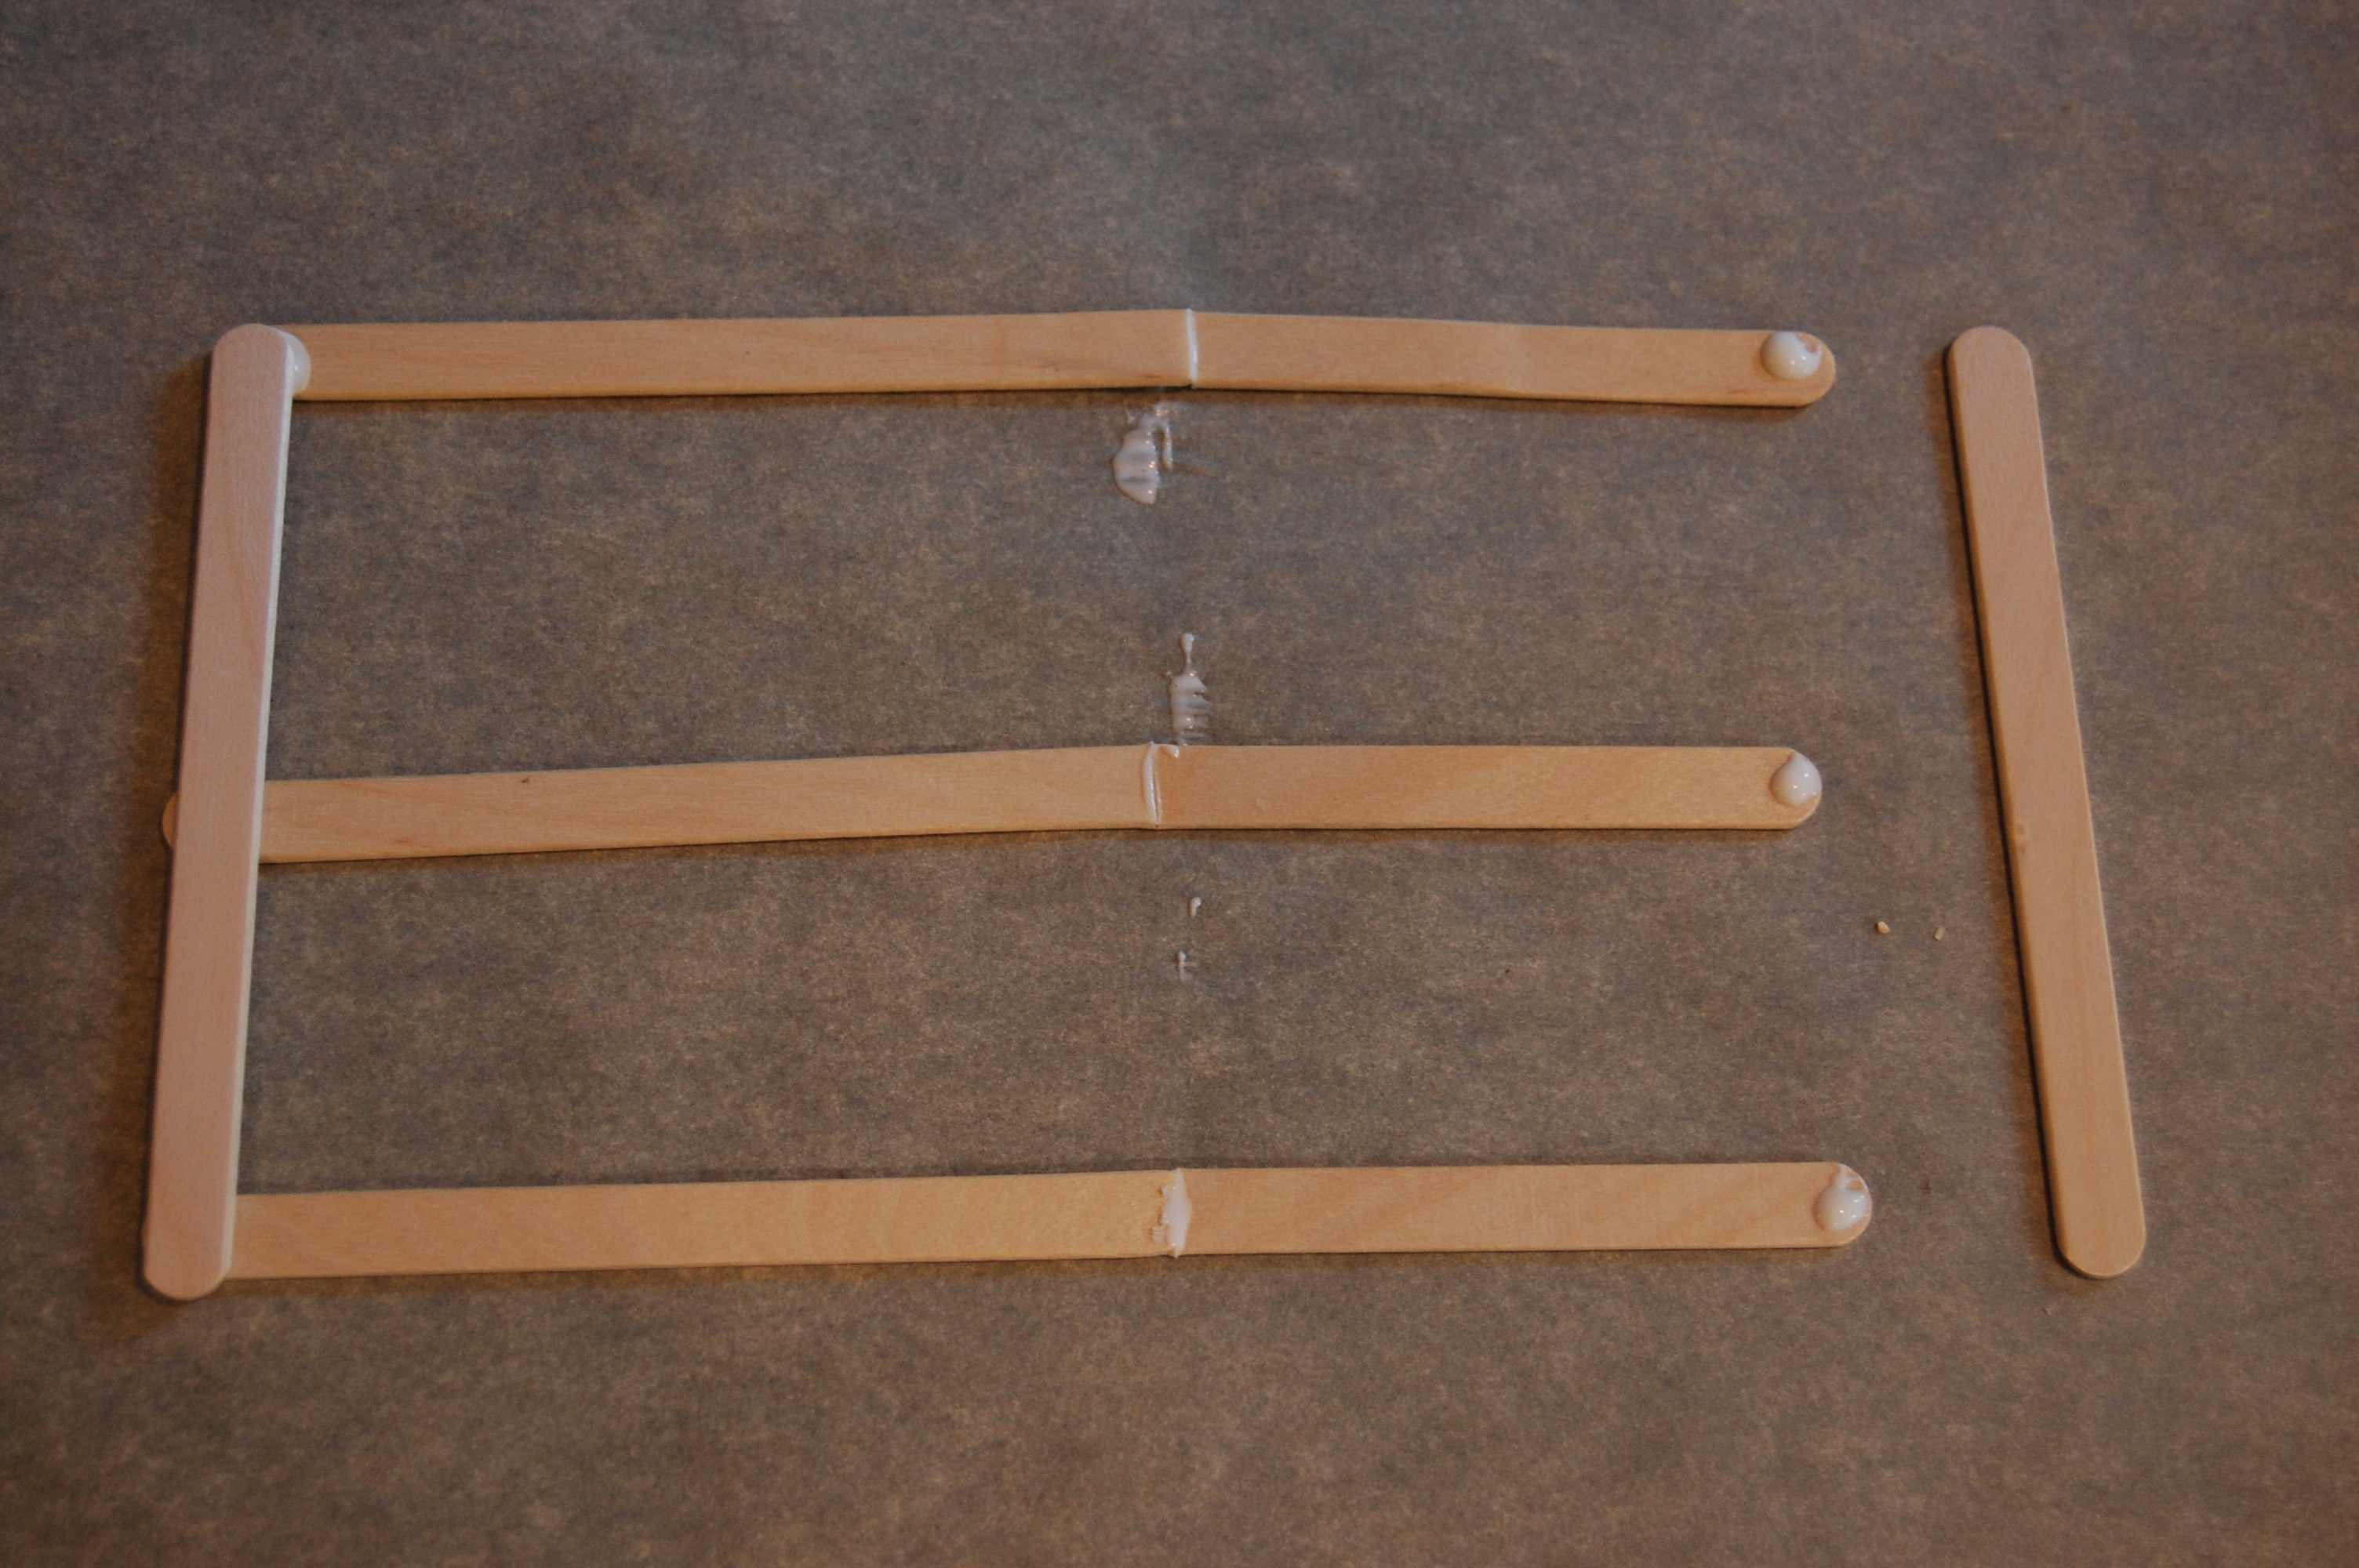 Popsicle stick ten frame tutorial mathematics and science in sd glue a popsicle stick directly over the joints of your long three glued together sticks this helps to reinforce and stabilize your ten frame jeuxipadfo Gallery